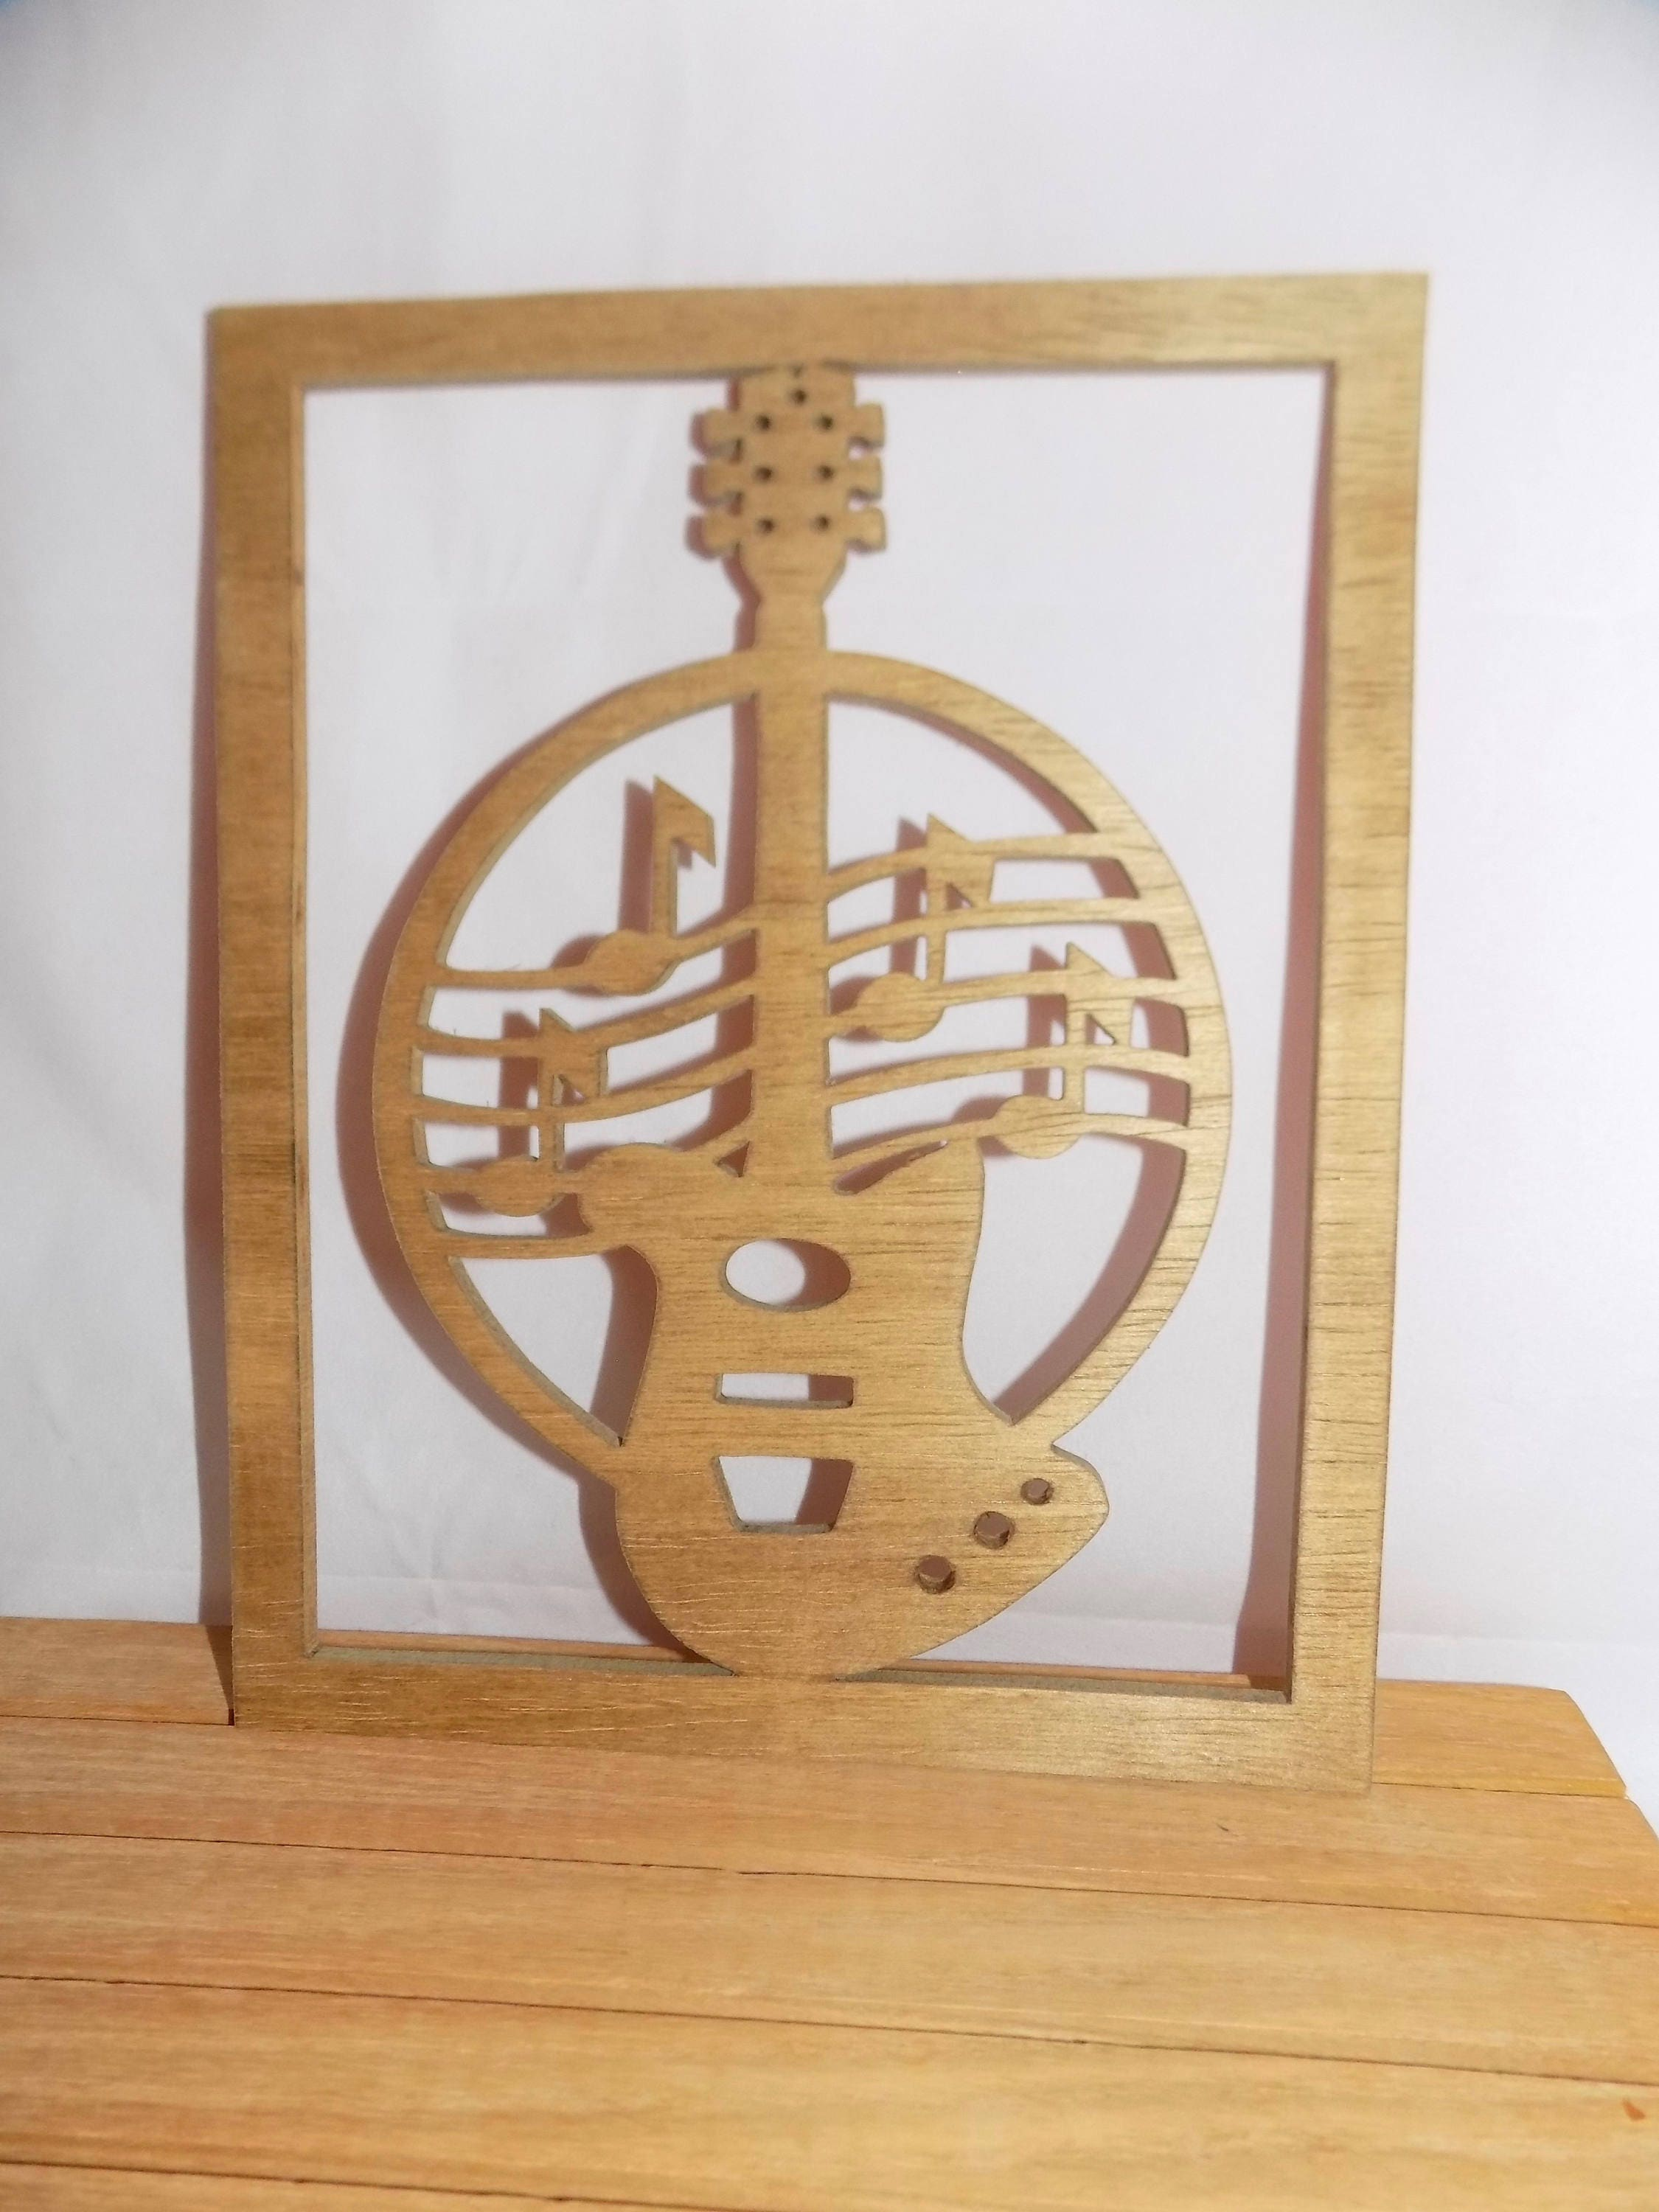 new guitar electric photo scroll saw plaque. Black Bedroom Furniture Sets. Home Design Ideas